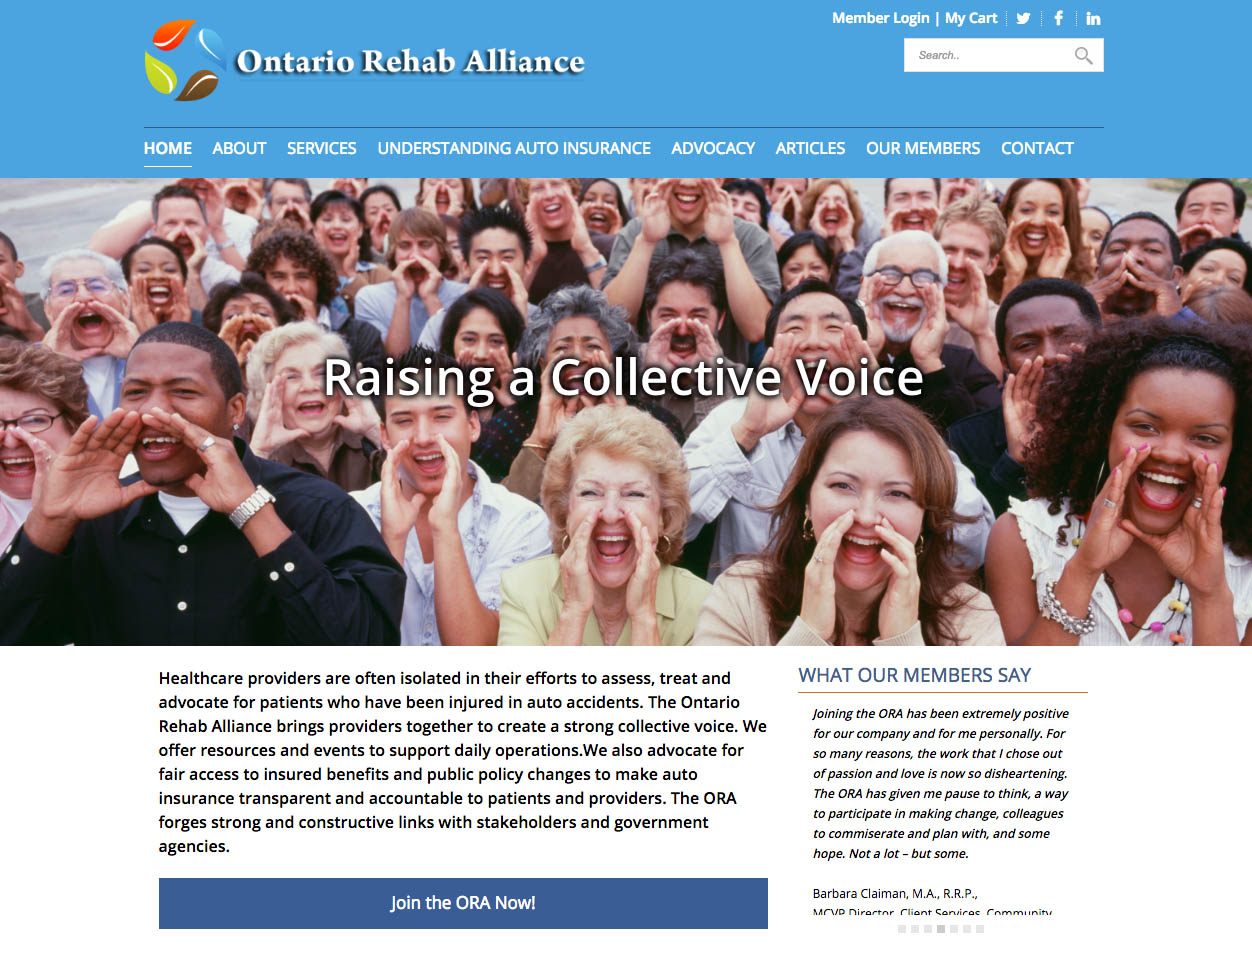 The Ontario Rehab Alliance Website